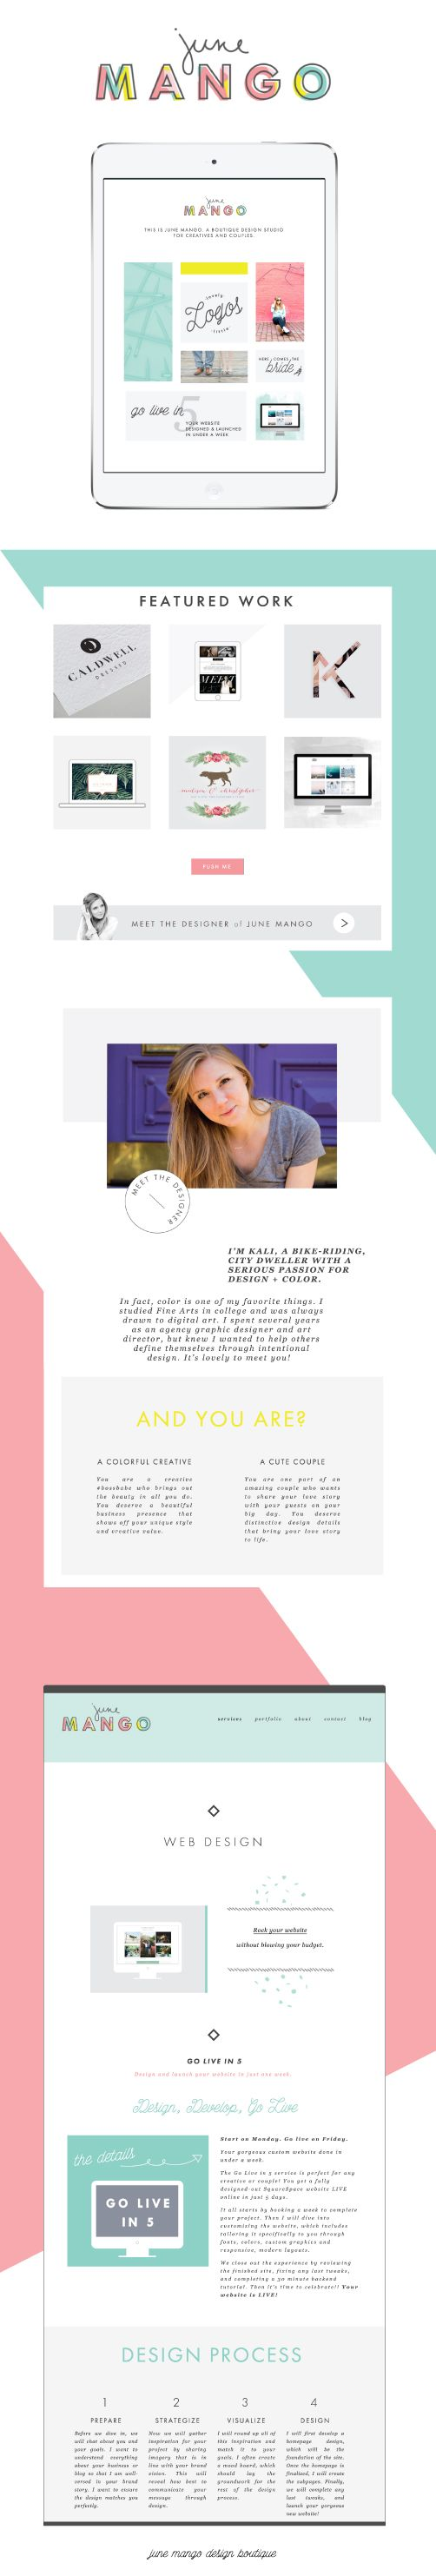 colorful + clean + feminine web design // SquareSpace website design